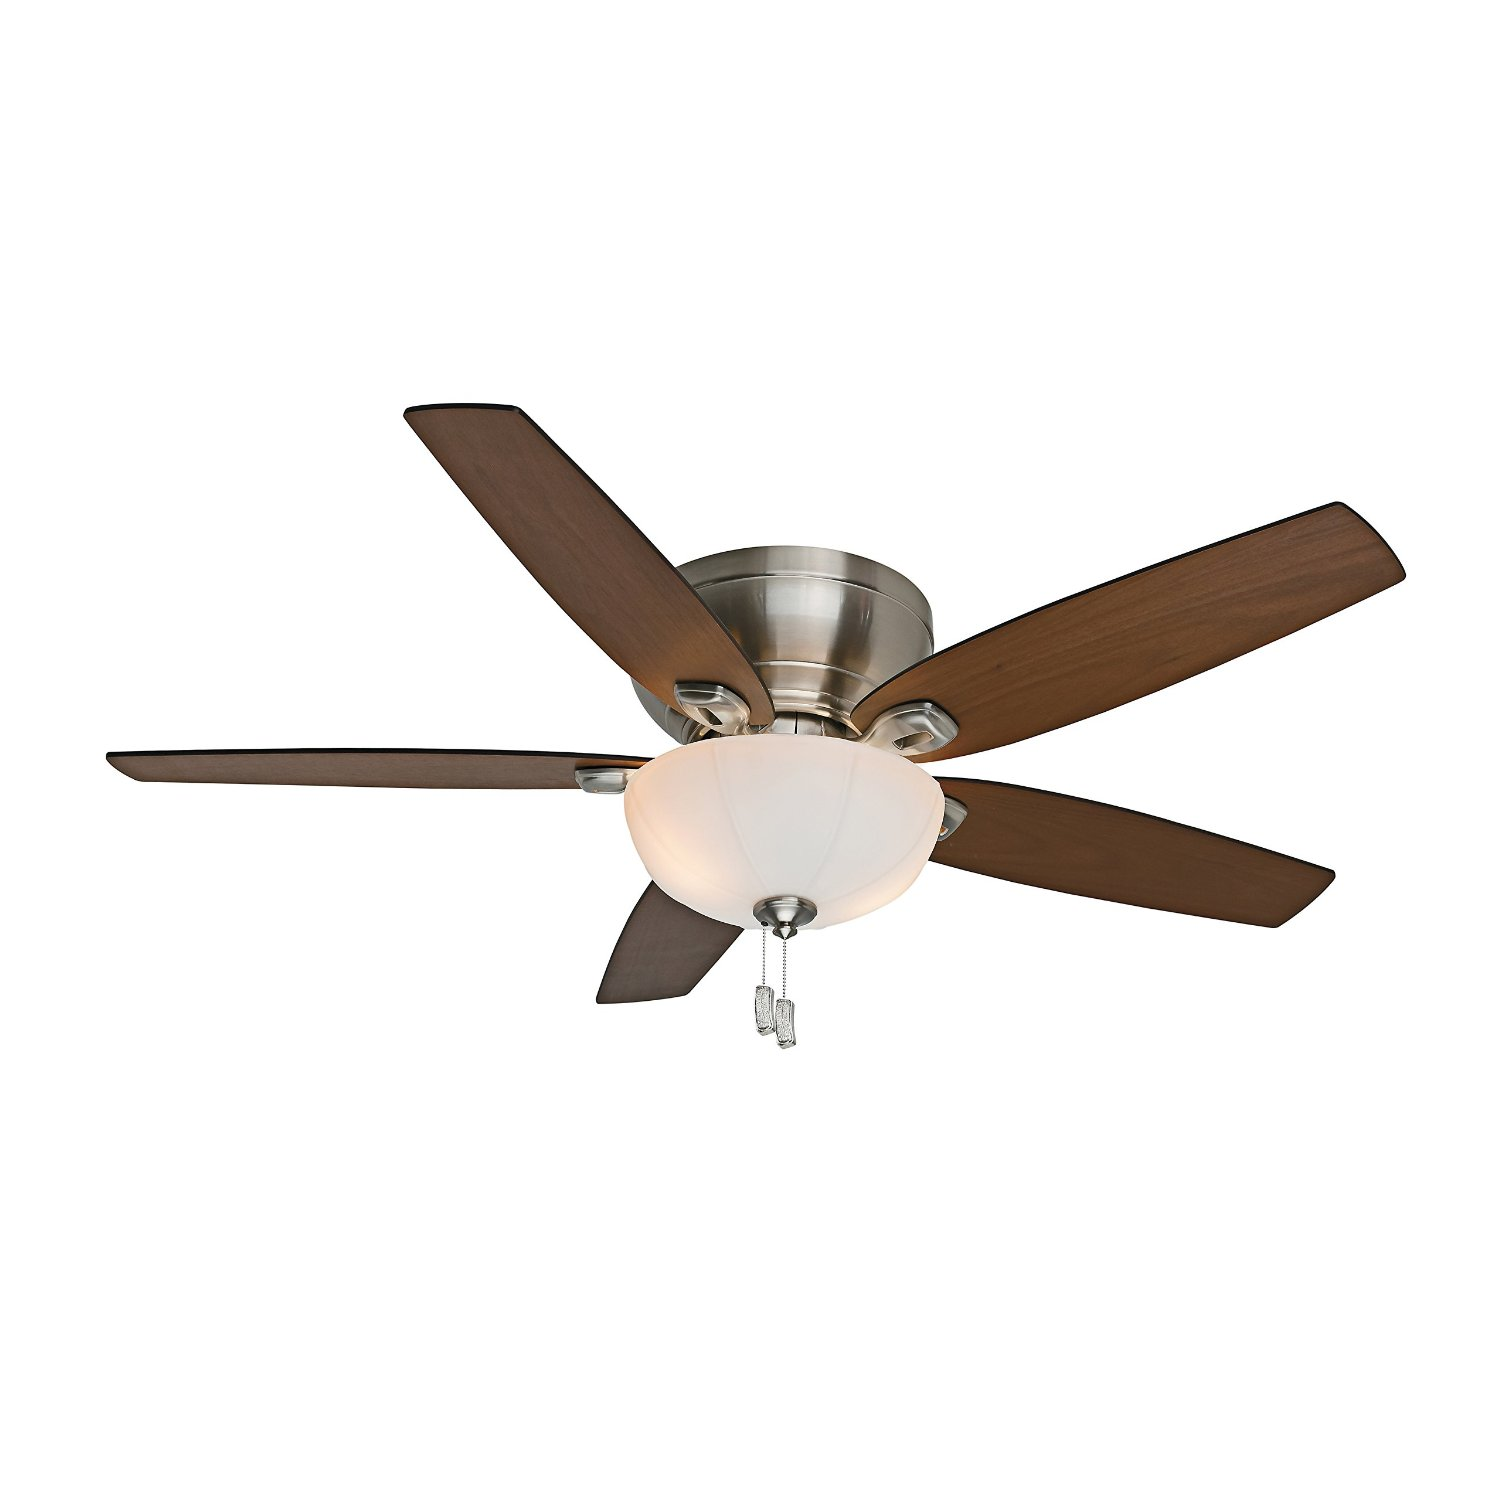 chic casablanca ceiling fans 54101 Durant 54 Inch Brushed Nickel Ceiling with five blade slinger for ceiling furniture ideas